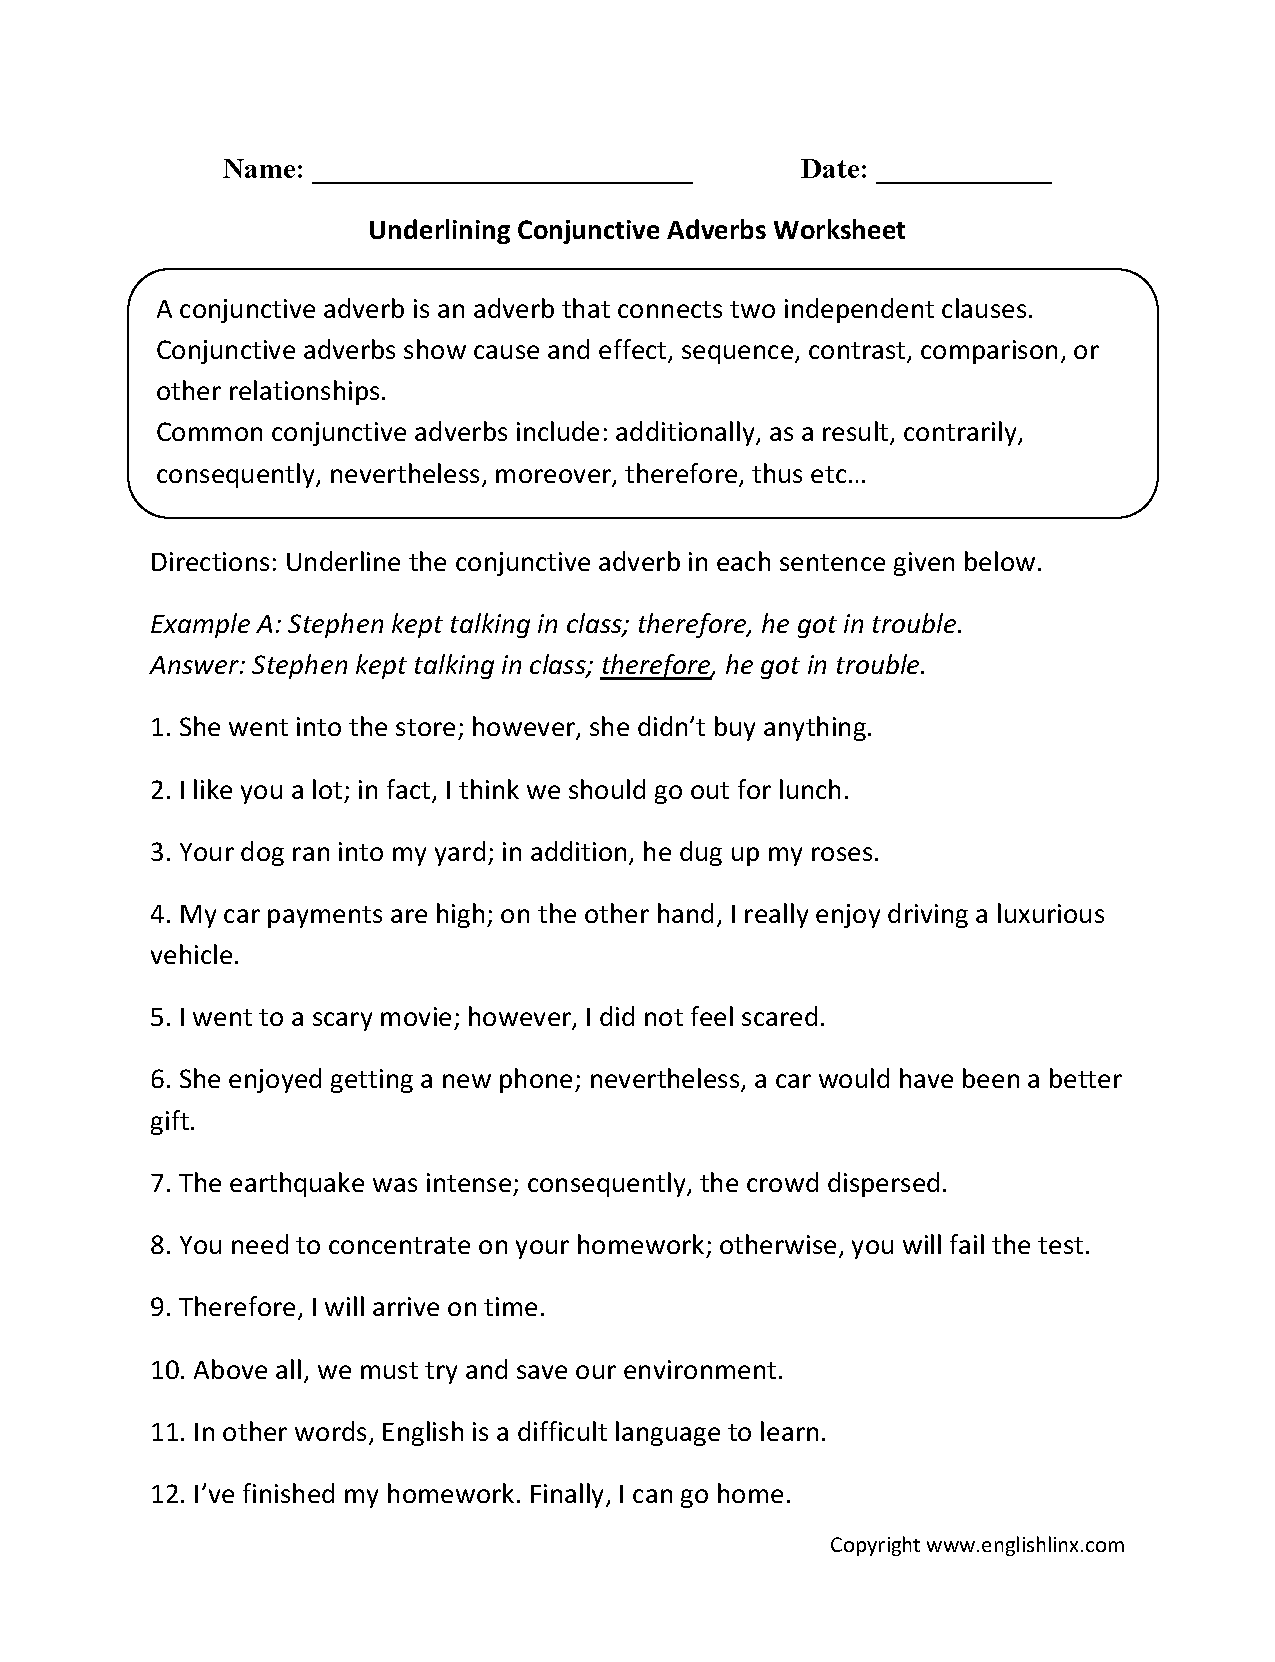 Weirdmailus  Nice Englishlinxcom  Conjunctions Worksheets With Inspiring Worksheet With Extraordinary English  Worksheets Also Place Value Worksheets Grade  In Addition Yr  Maths Worksheets And Free Printable Worksheets For Lkg As Well As Preschool Maths Worksheets Free Printable Additionally Rounding To  And  Worksheets From Englishlinxcom With Weirdmailus  Inspiring Englishlinxcom  Conjunctions Worksheets With Extraordinary Worksheet And Nice English  Worksheets Also Place Value Worksheets Grade  In Addition Yr  Maths Worksheets From Englishlinxcom